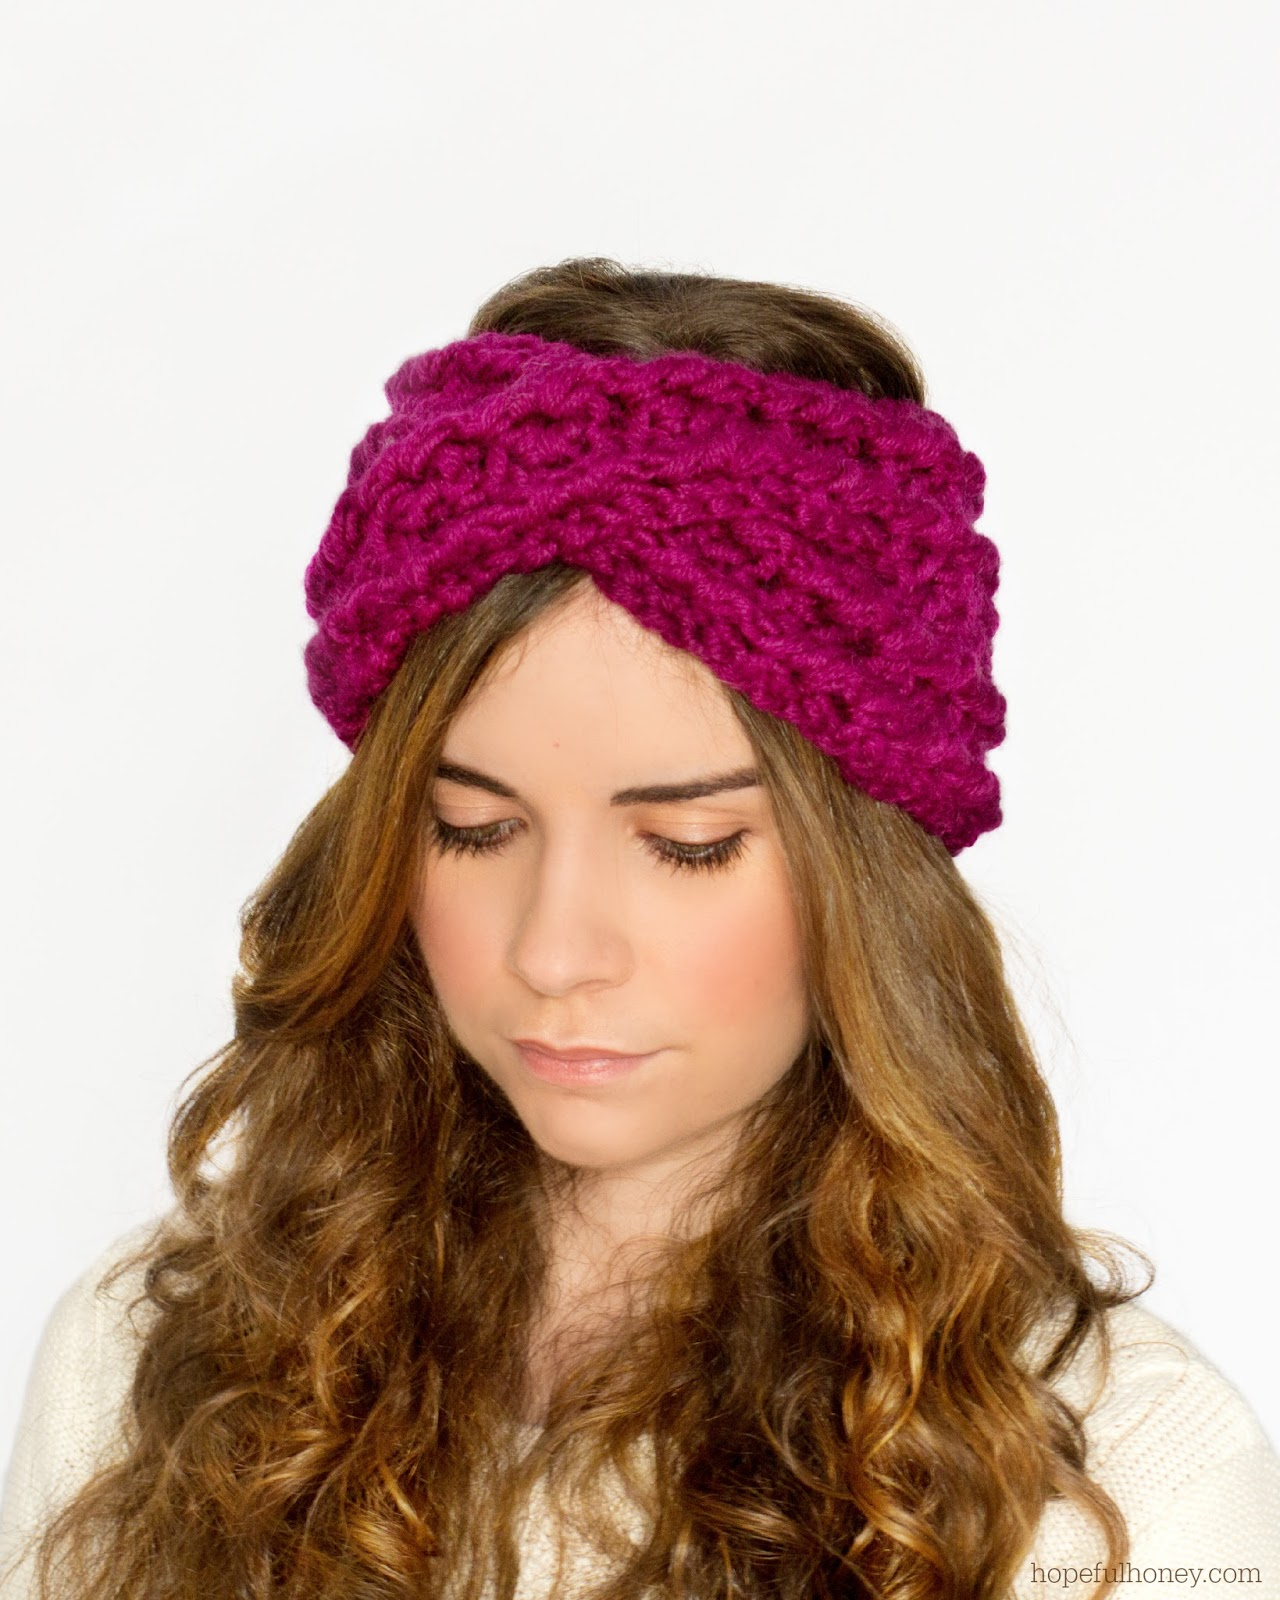 Earwarmer Knitting Patterns Head Bands Headband Knitting Patterns Archives The Funky Stitch